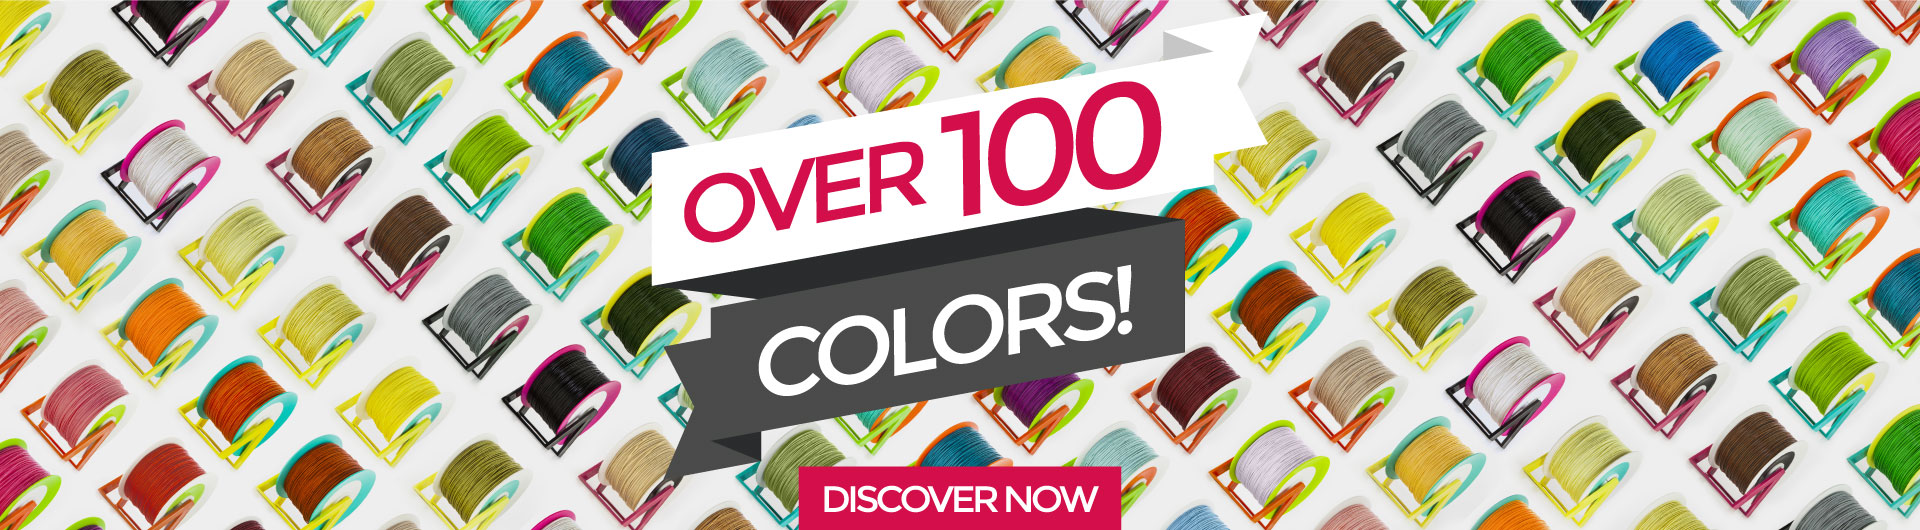 Over 100 Colors